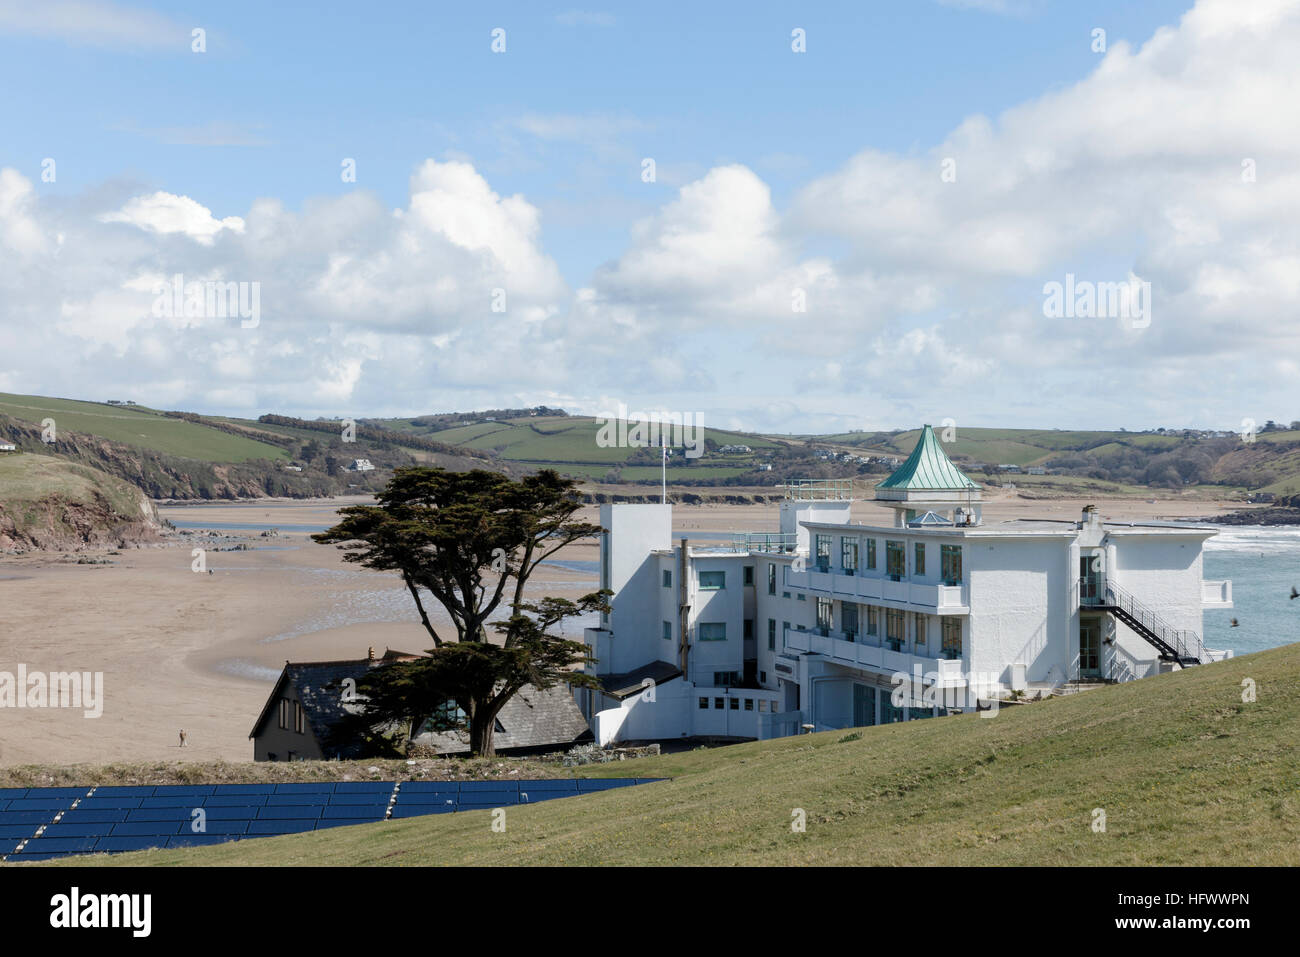 The Burgh Island Hotel, at Bantham, Devon, UK - Stock Image